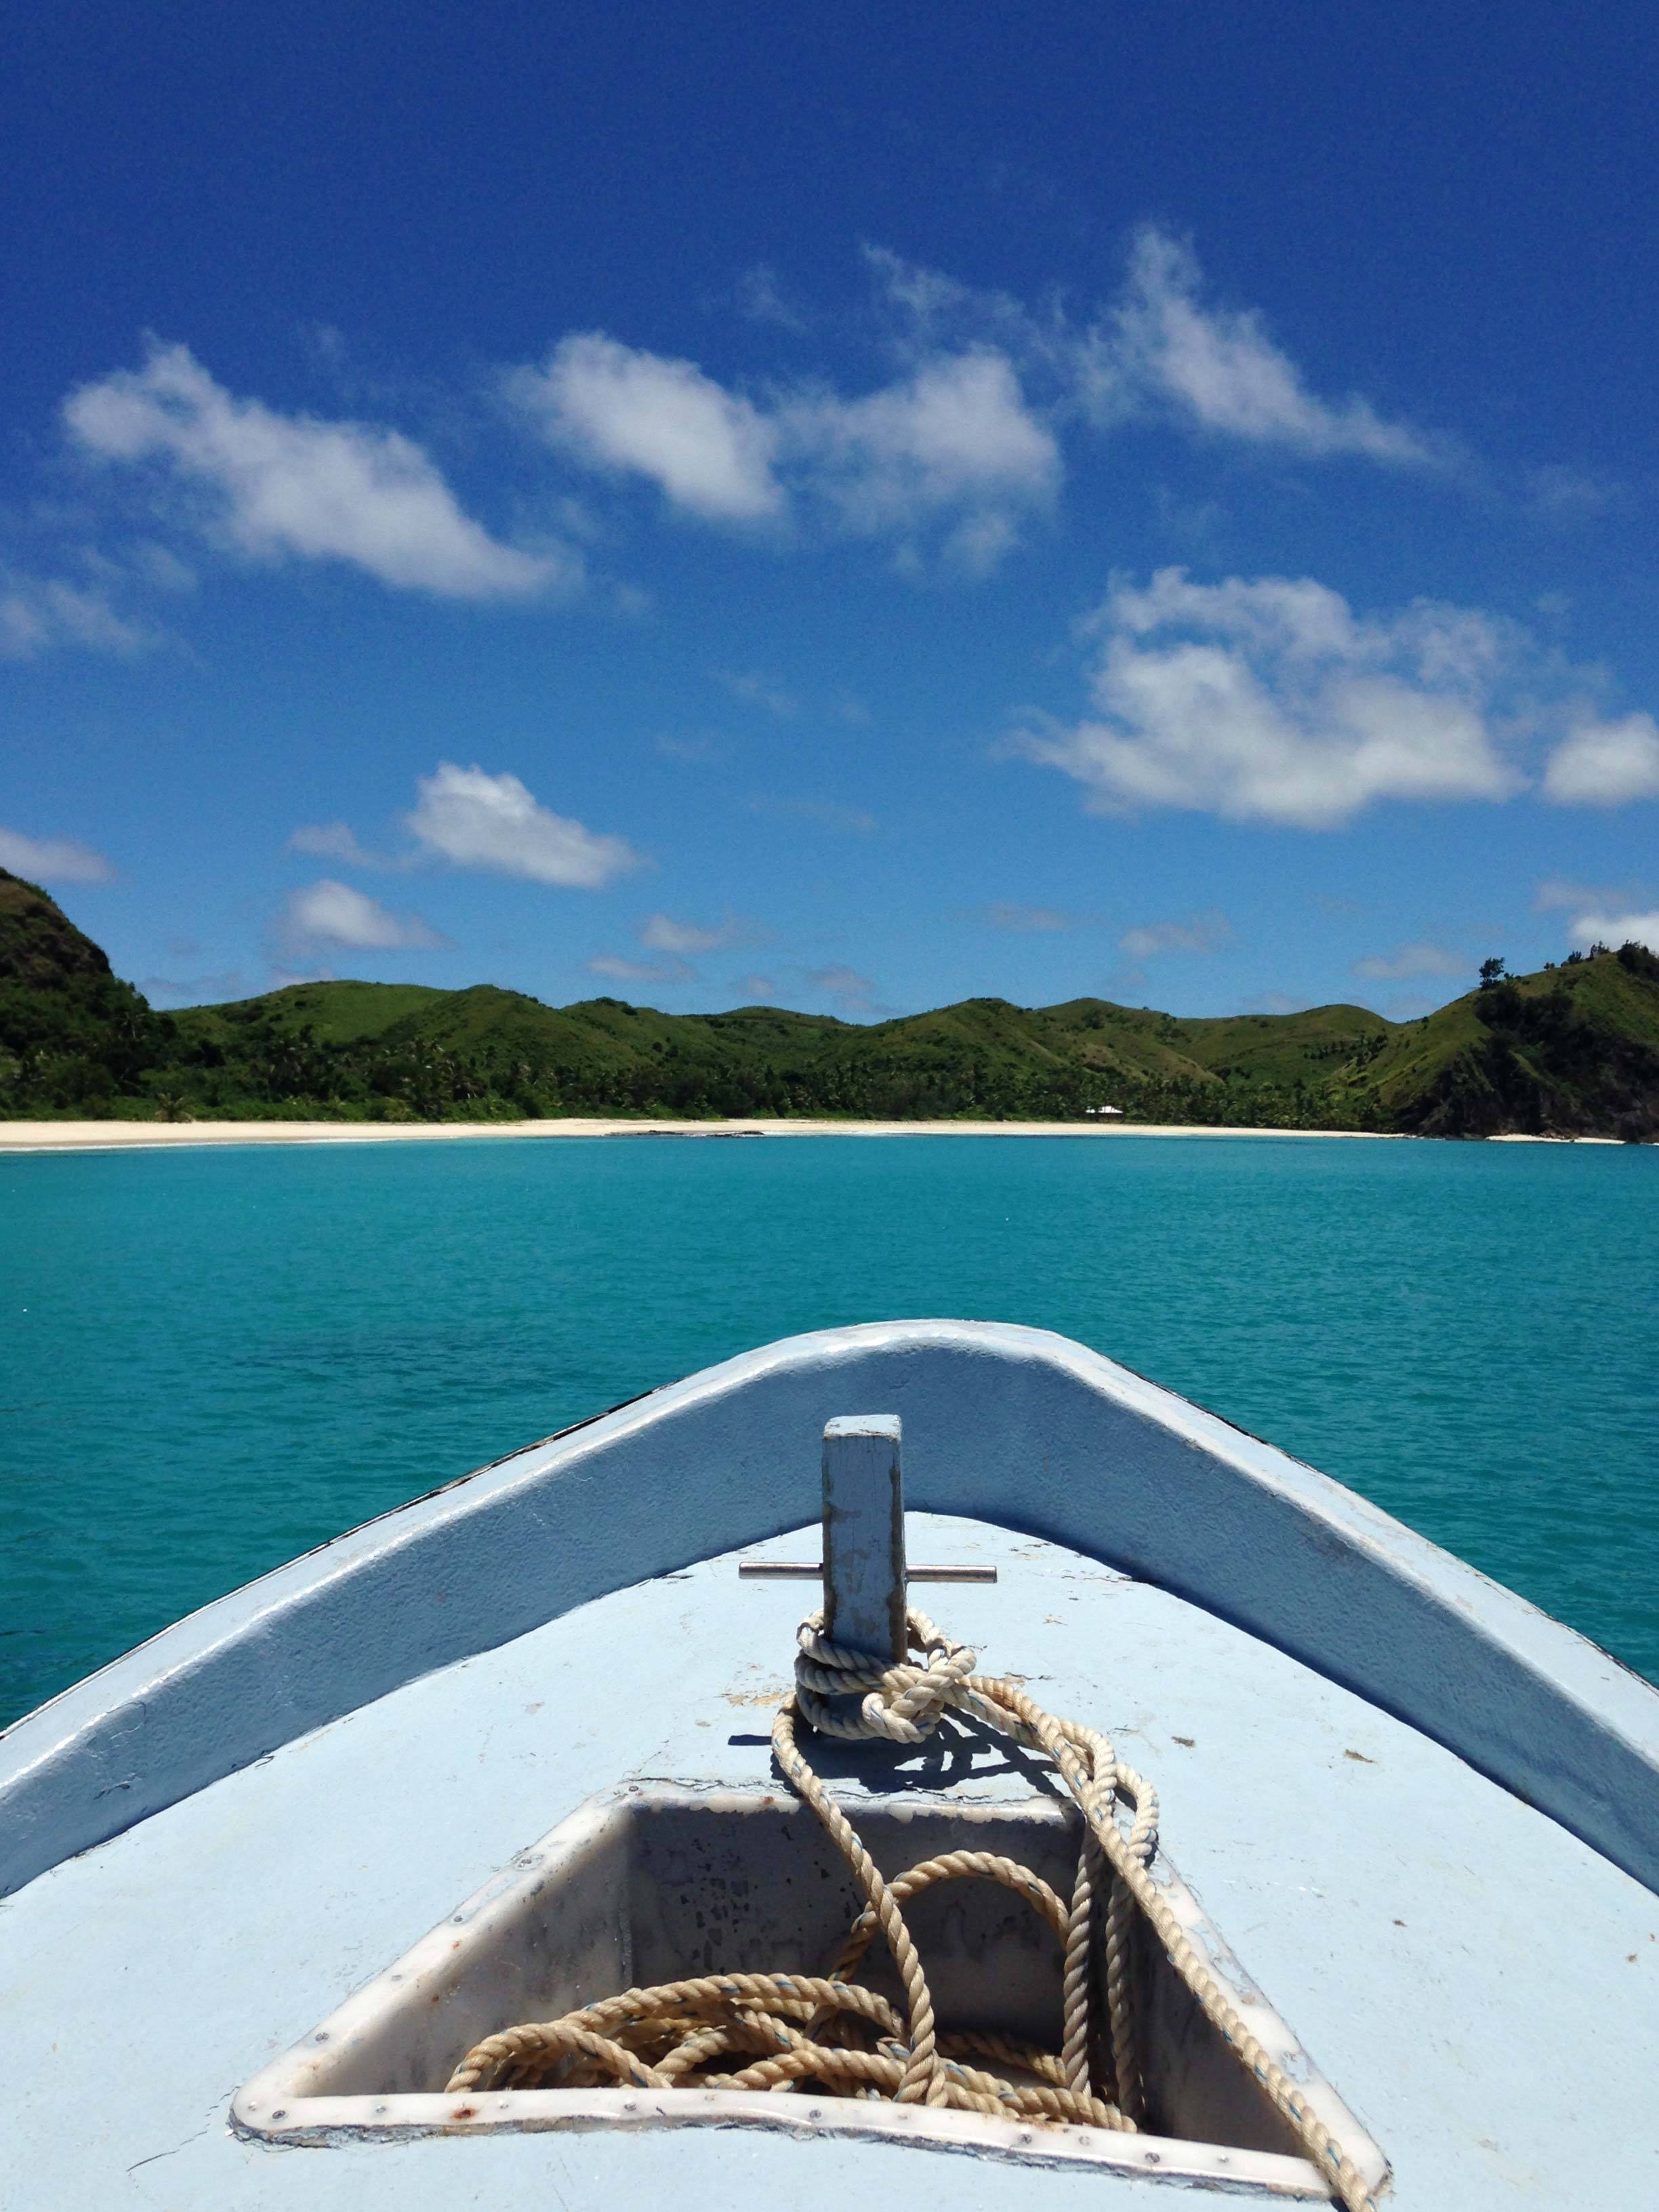 On a boat on the ocean looking back at Yasawa